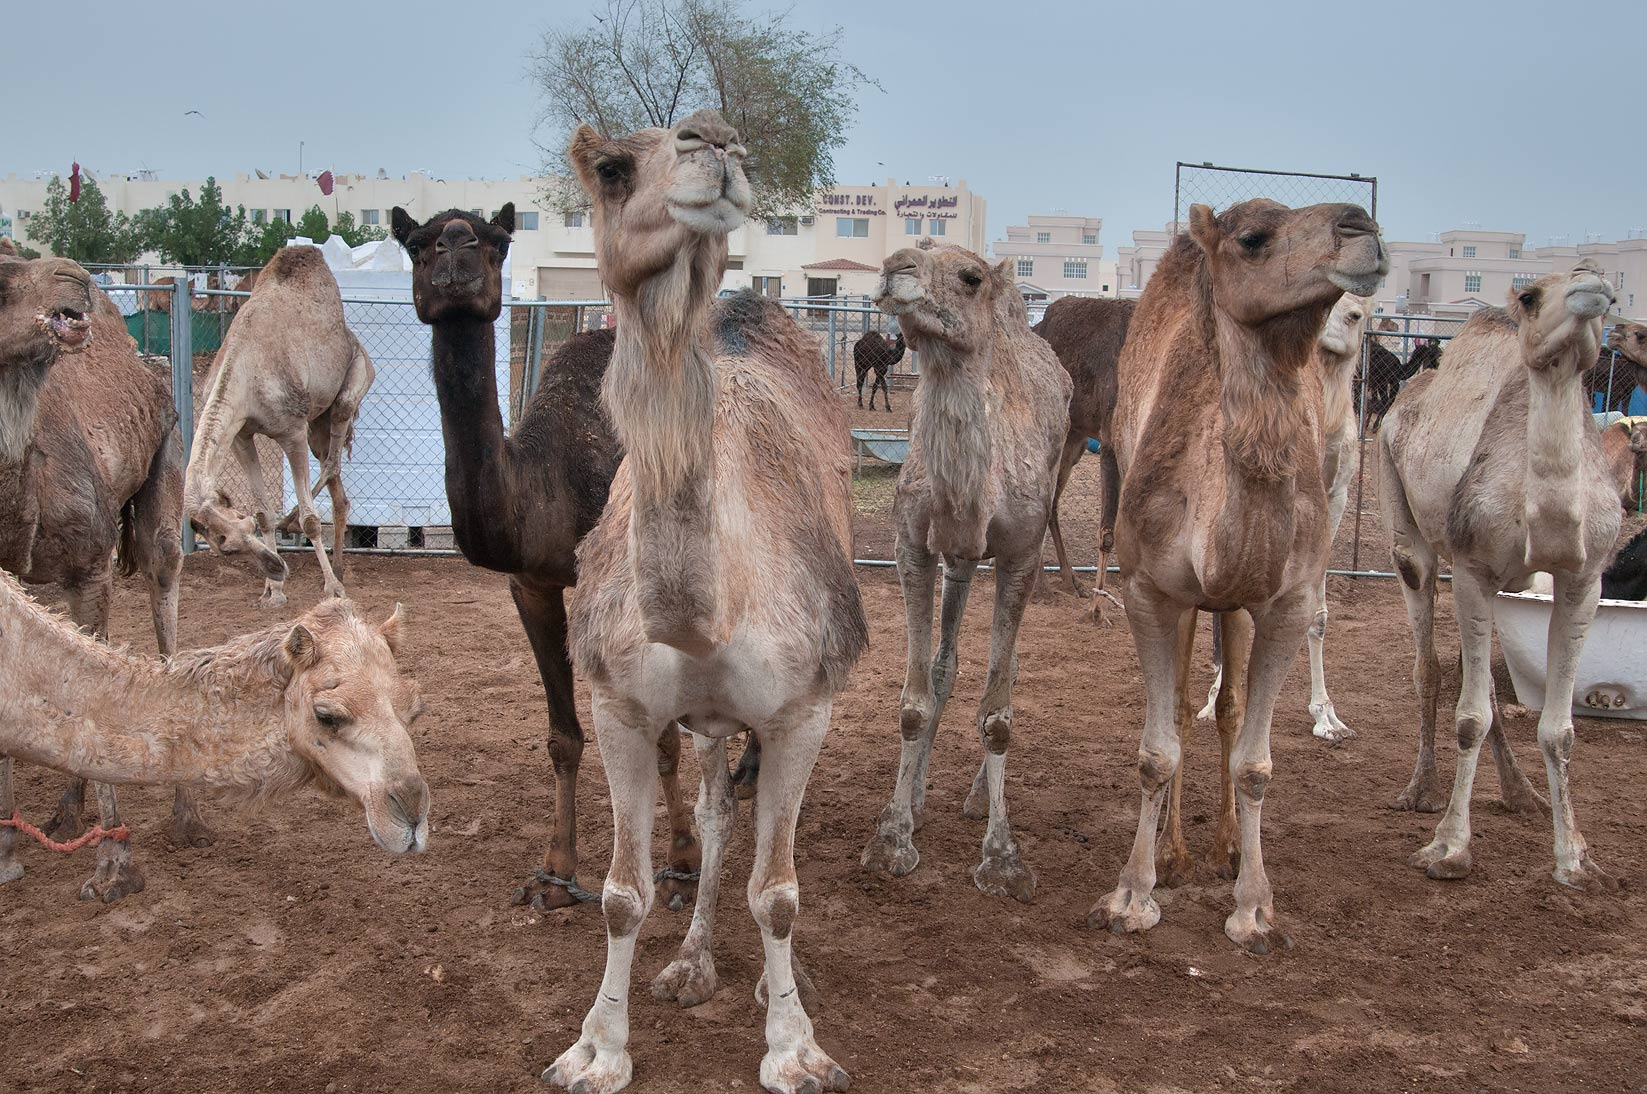 Group of standing camels at rain in Camel Market, Wholesale Markets area. Doha, Qatar